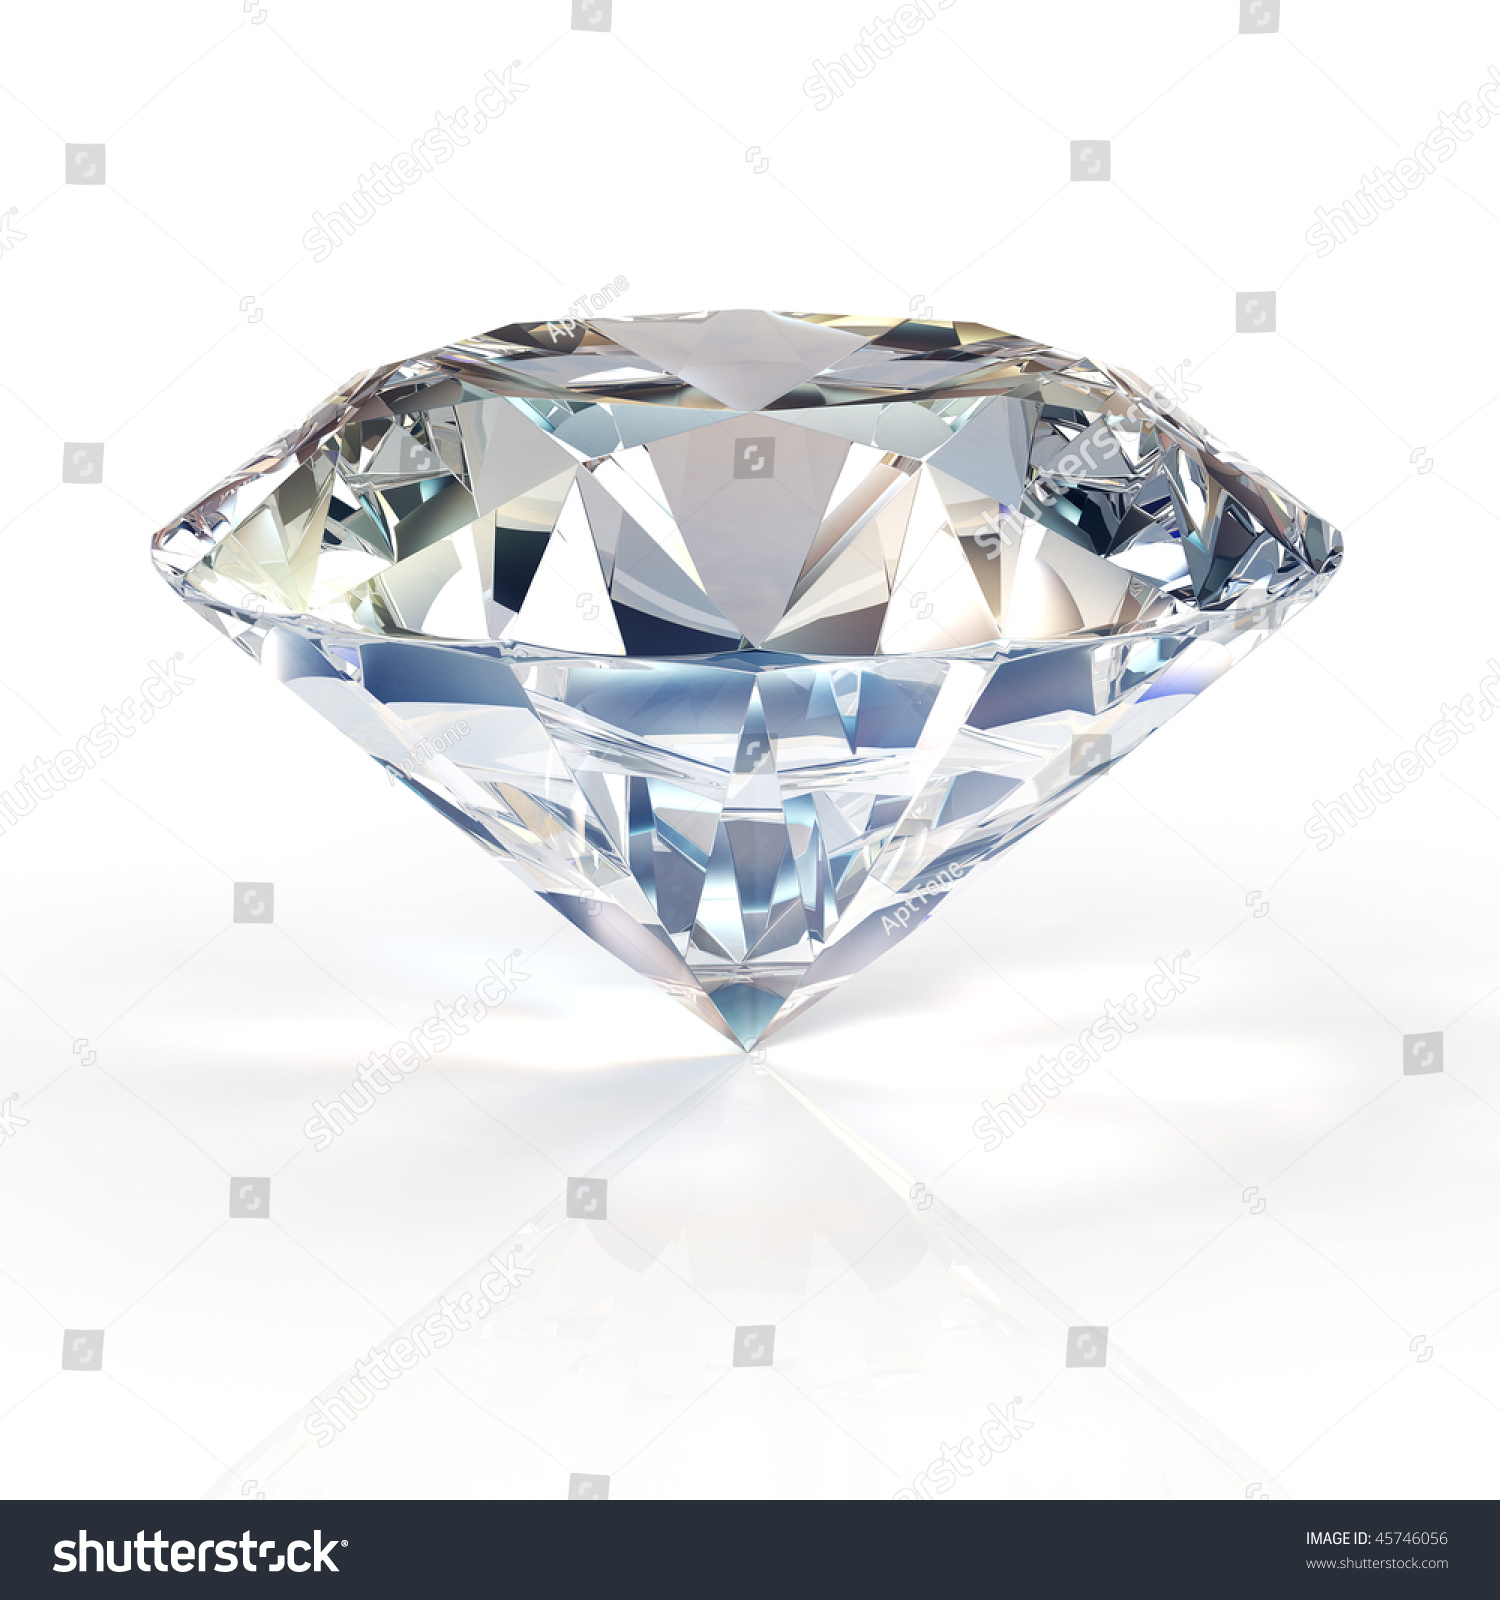 appearance sol dream to engagement dazzling rings ways you of sparkle ring son a multiplicity if the schwartz charles for even band are add your diamond destiny more s looking enhance